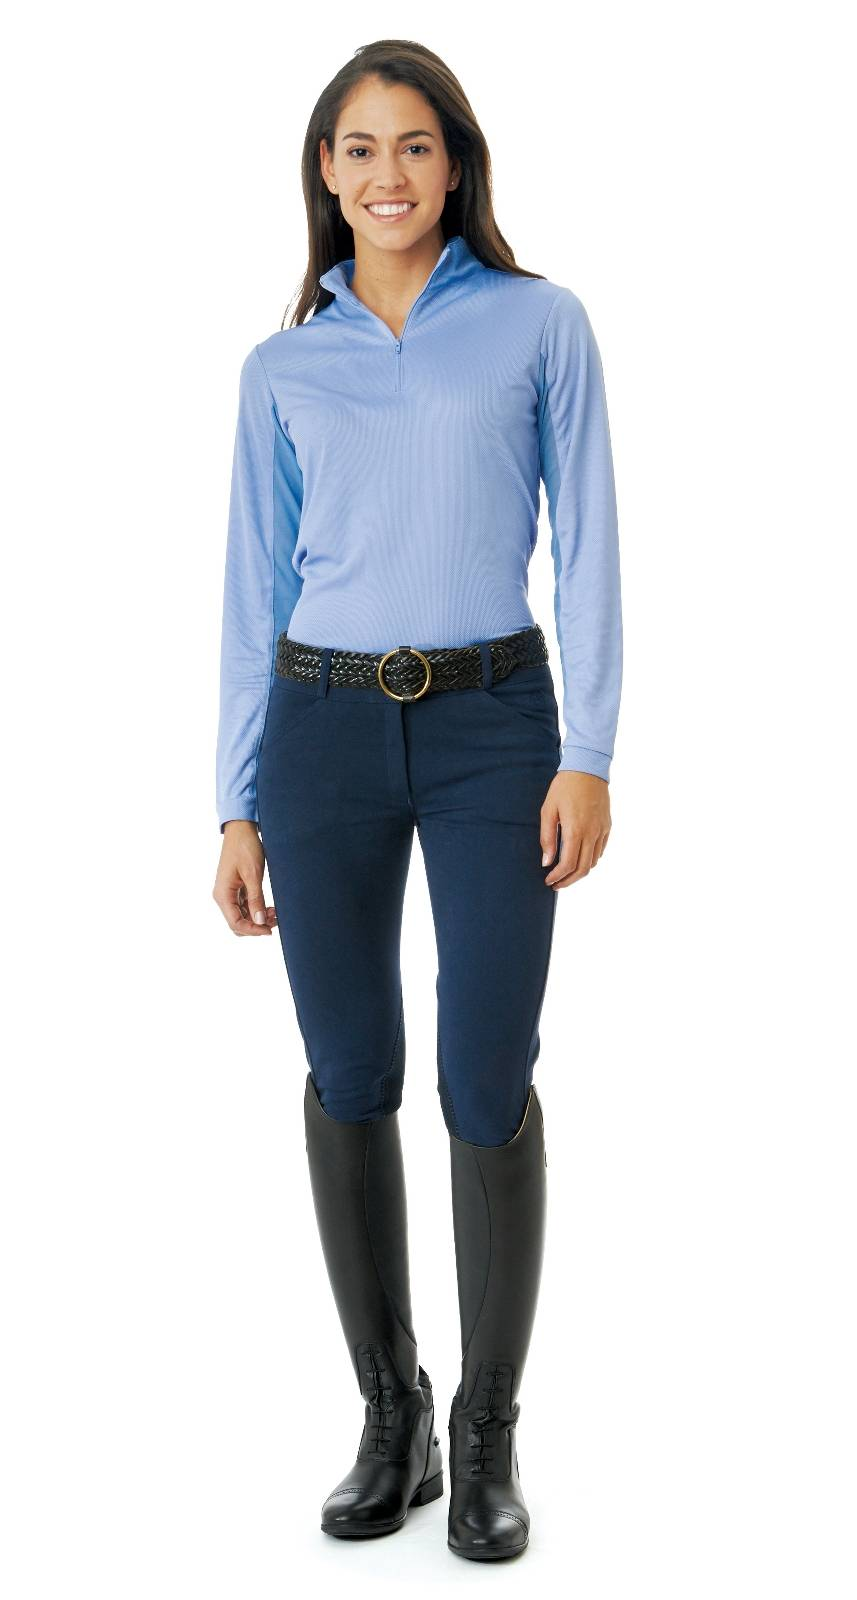 Ovation Madeline Euroseat Front Zip Breeches - Ladies, Knee Patch